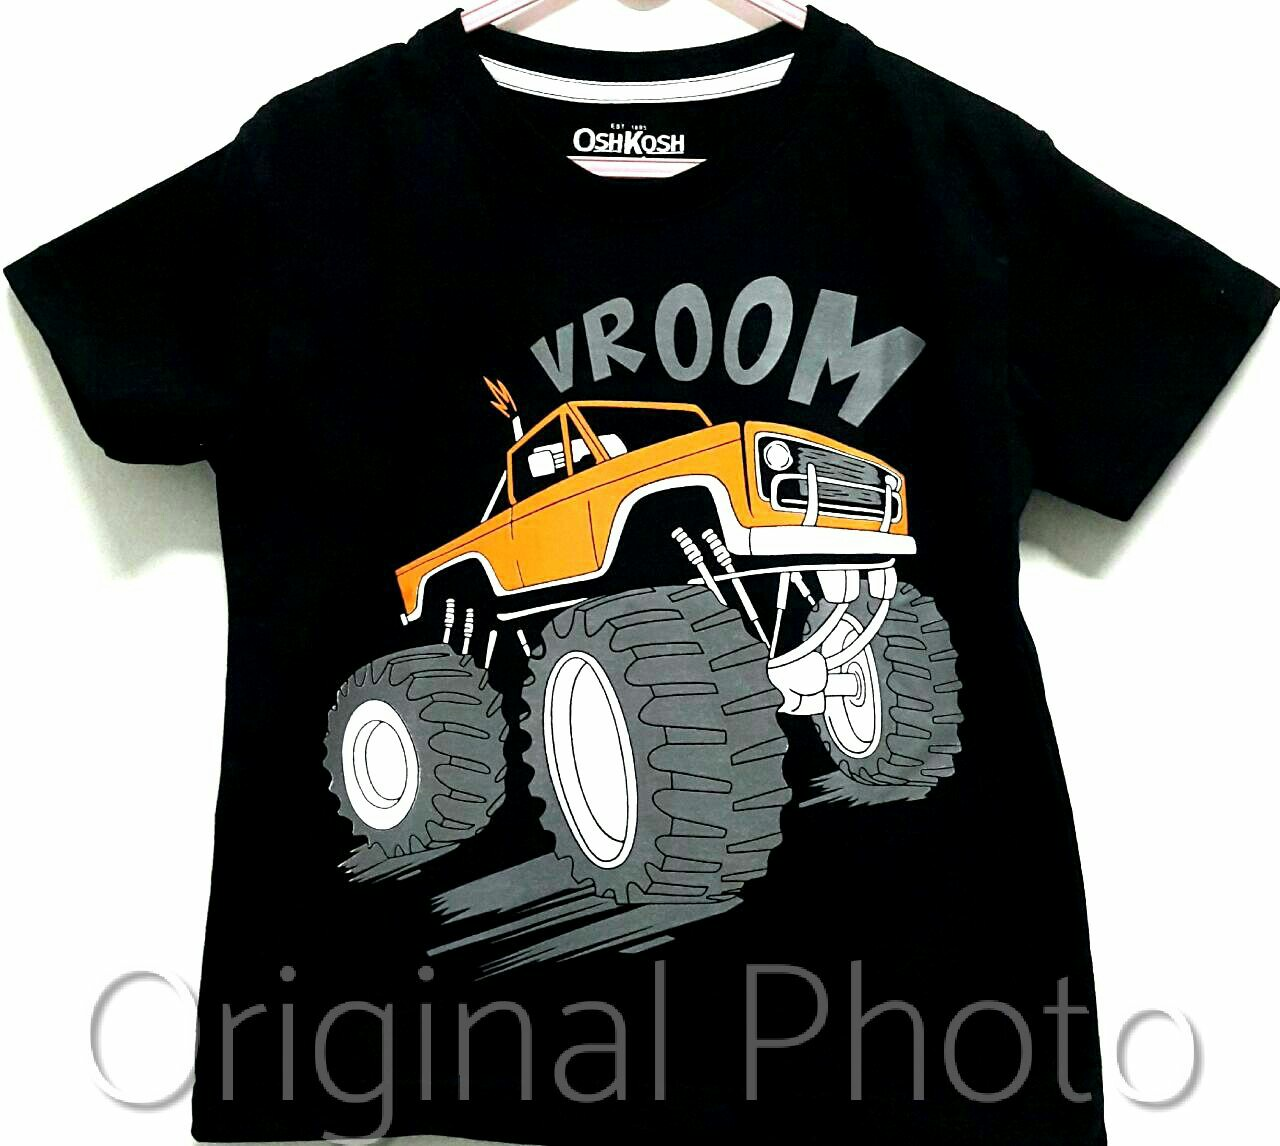 kaos anak oshkosh vroom monster truck 1-6 a52d231828